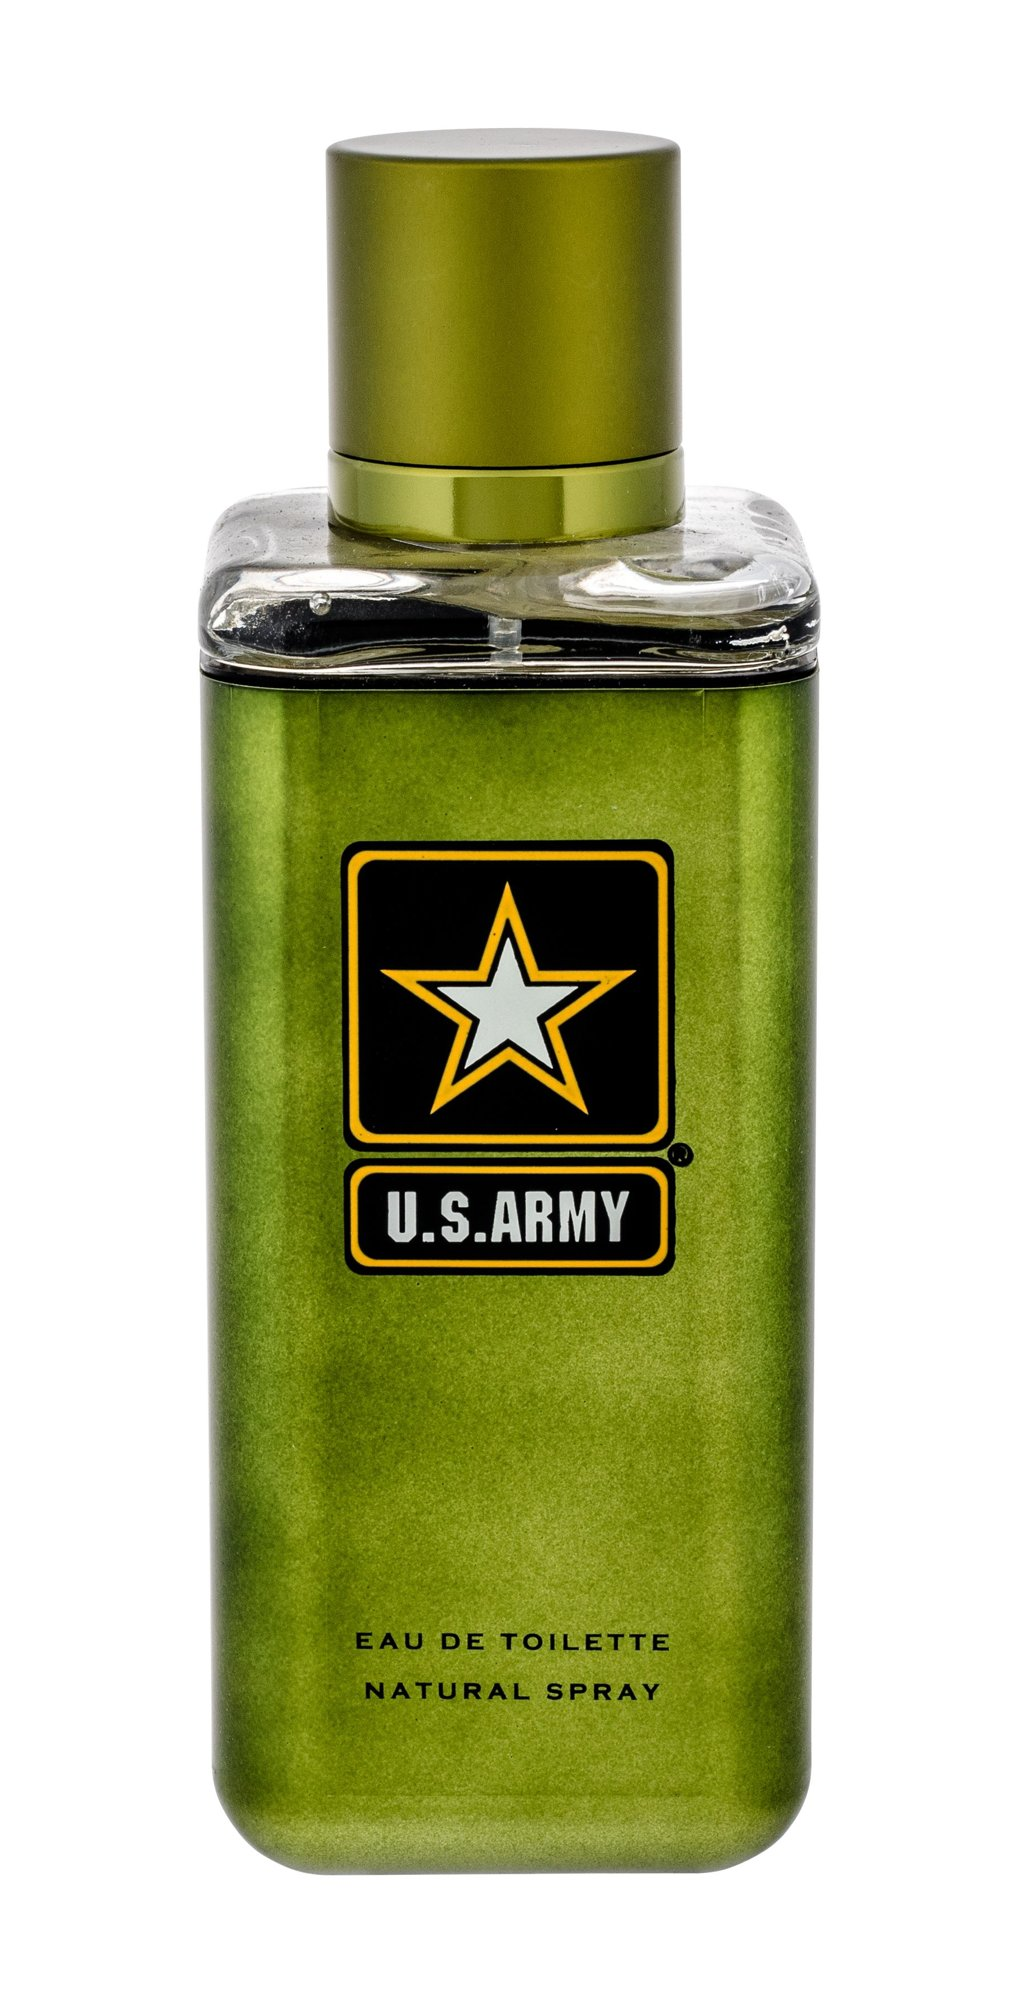 U.S.Army Green EDT 100ml